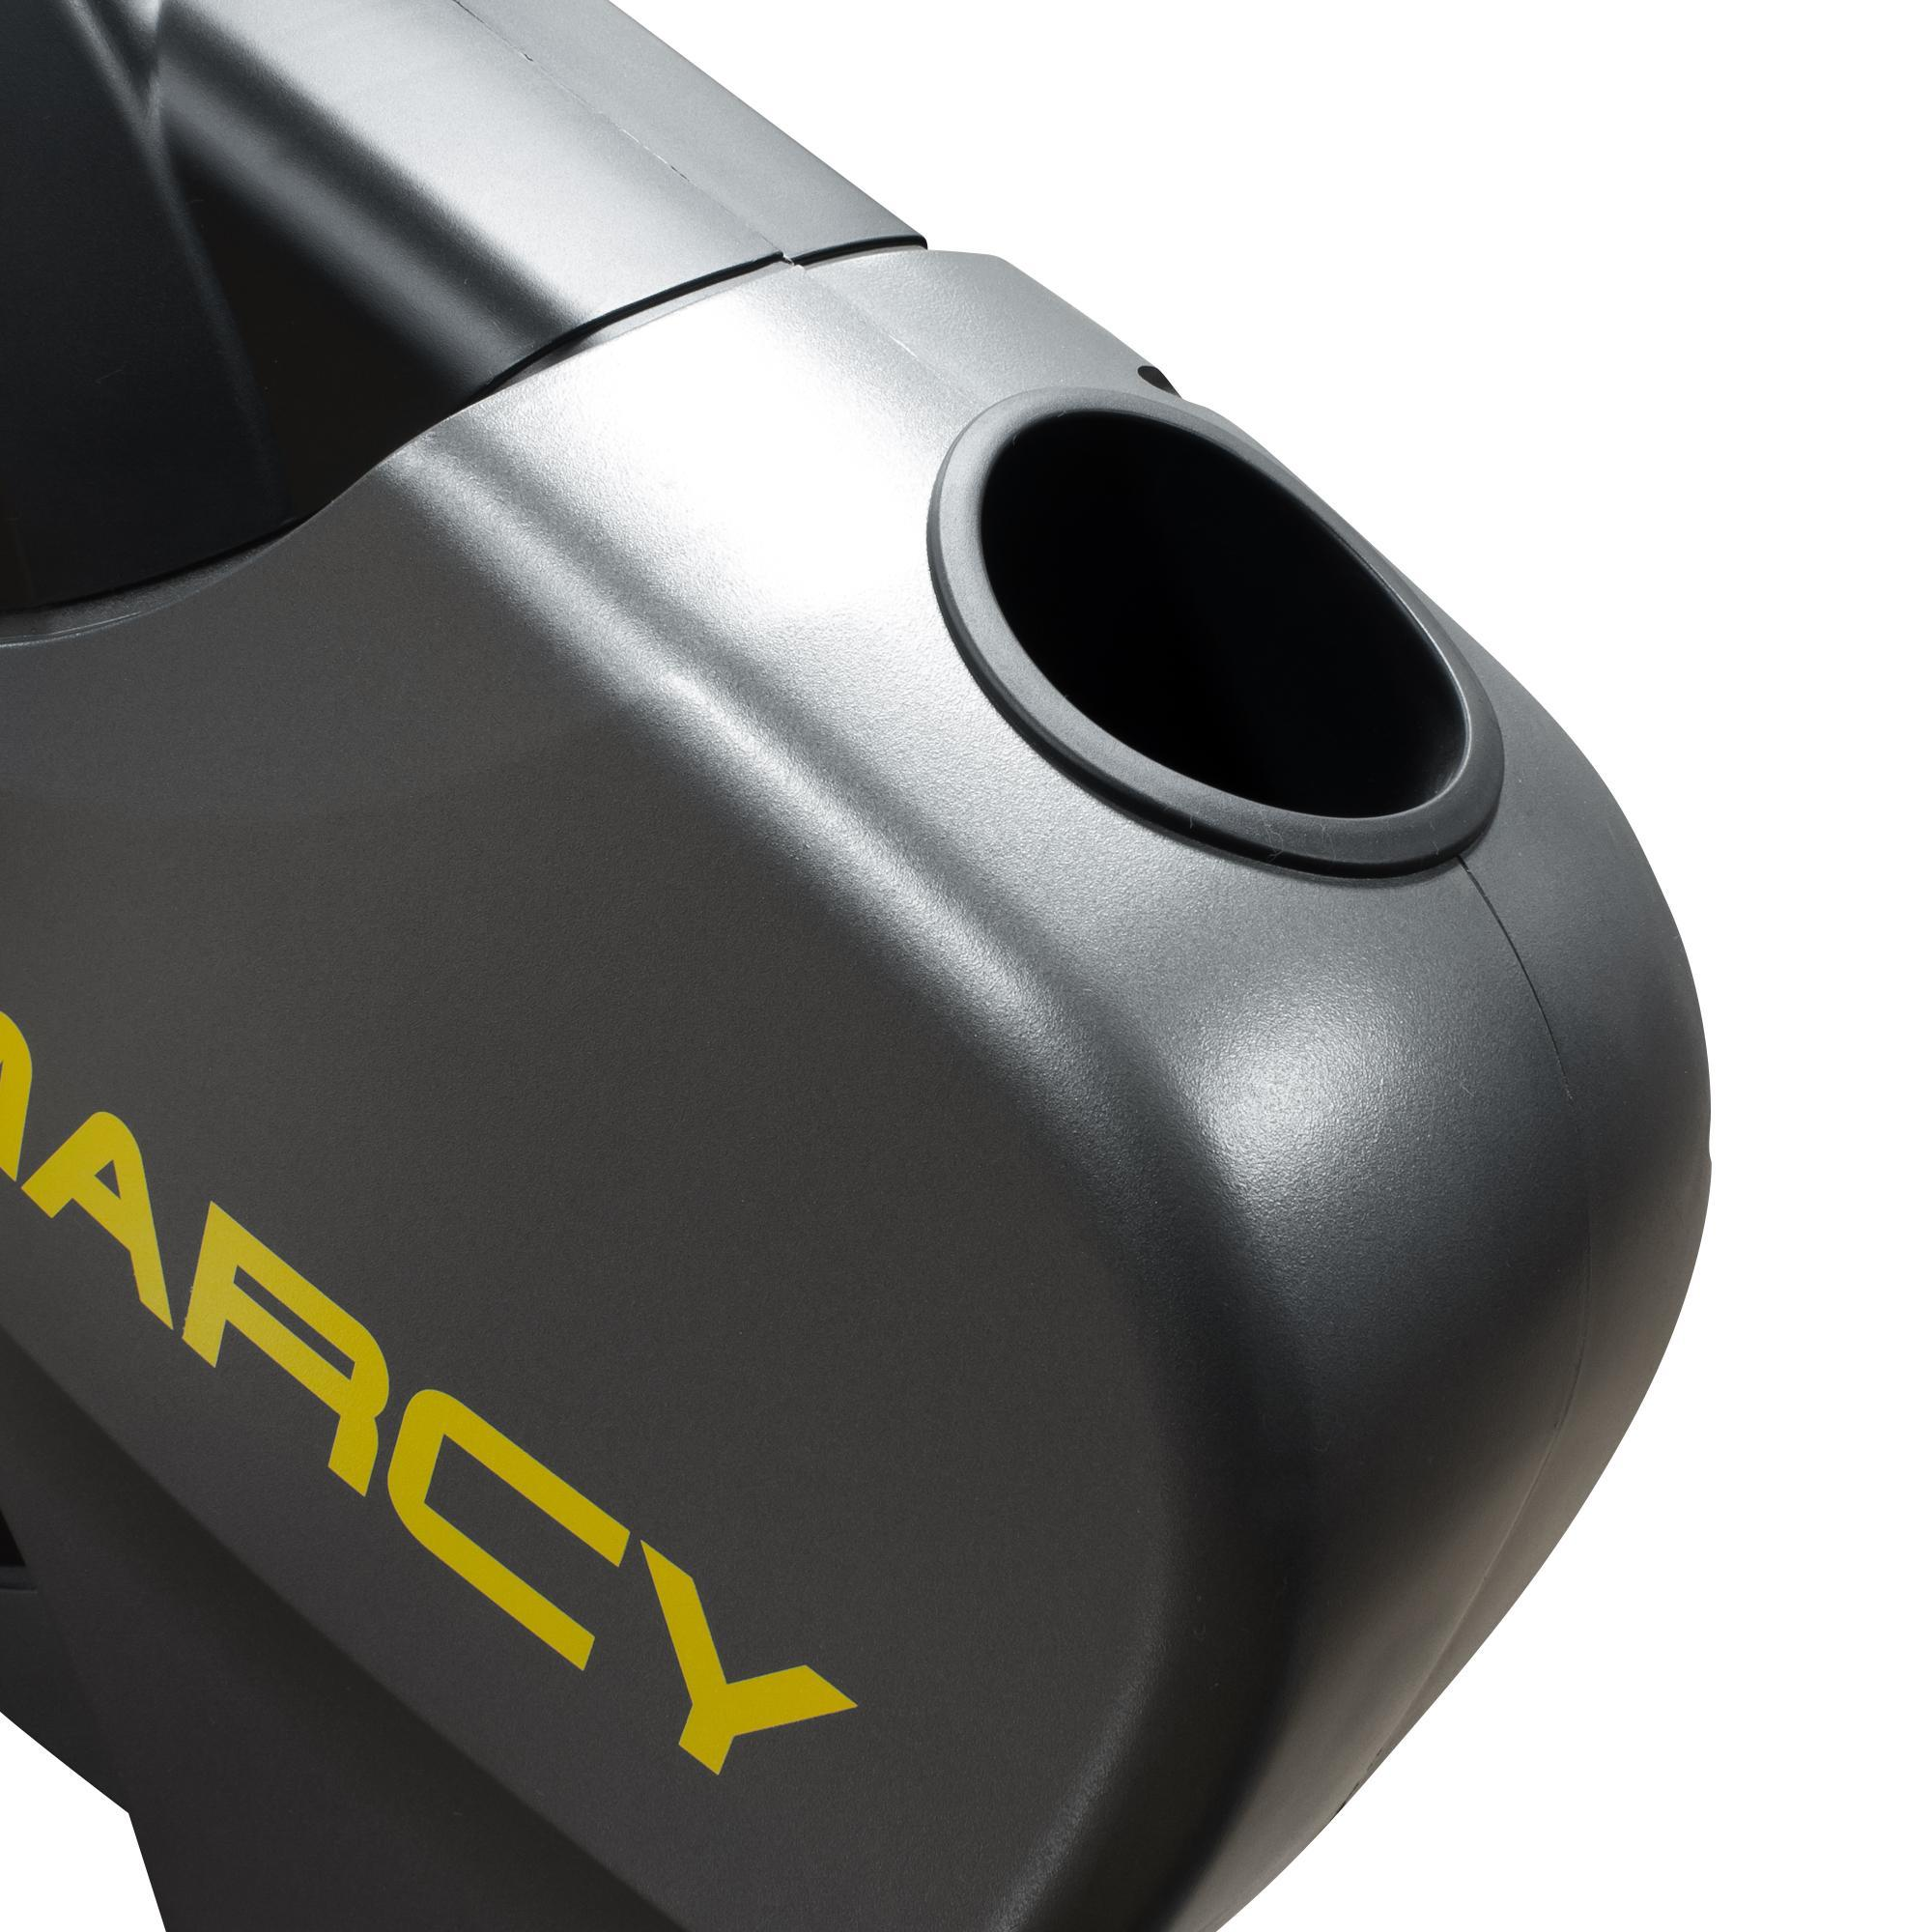 Marcy NS-716R Cup Holder